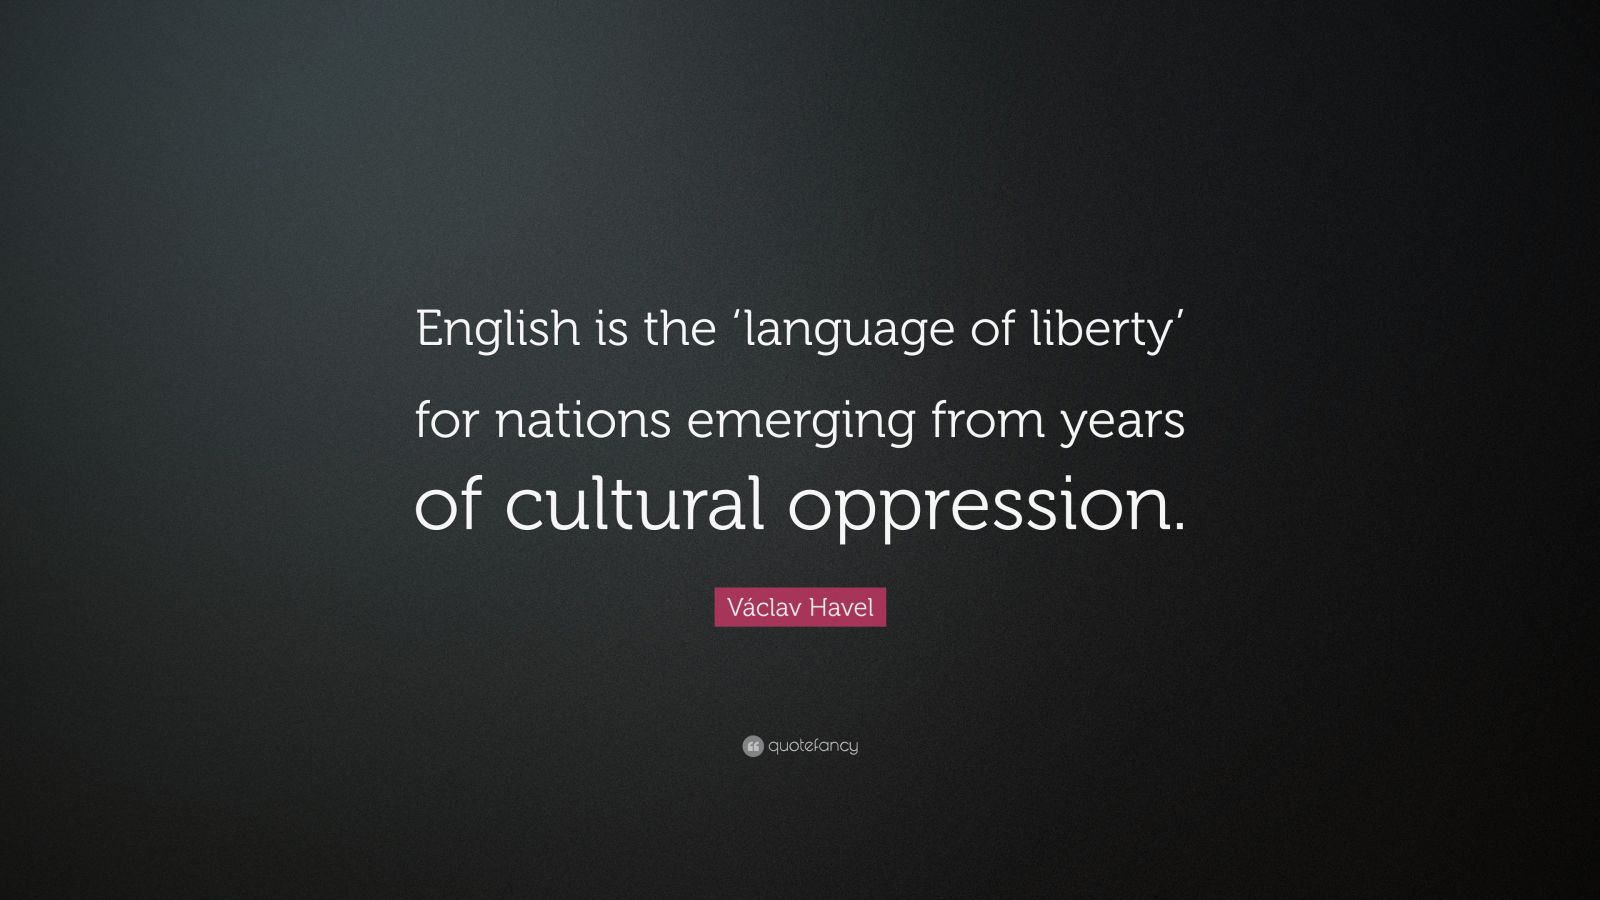 """Václav Havel Quote: """"English is the 'language of liberty' for nations emerging from years of cultural oppression."""""""